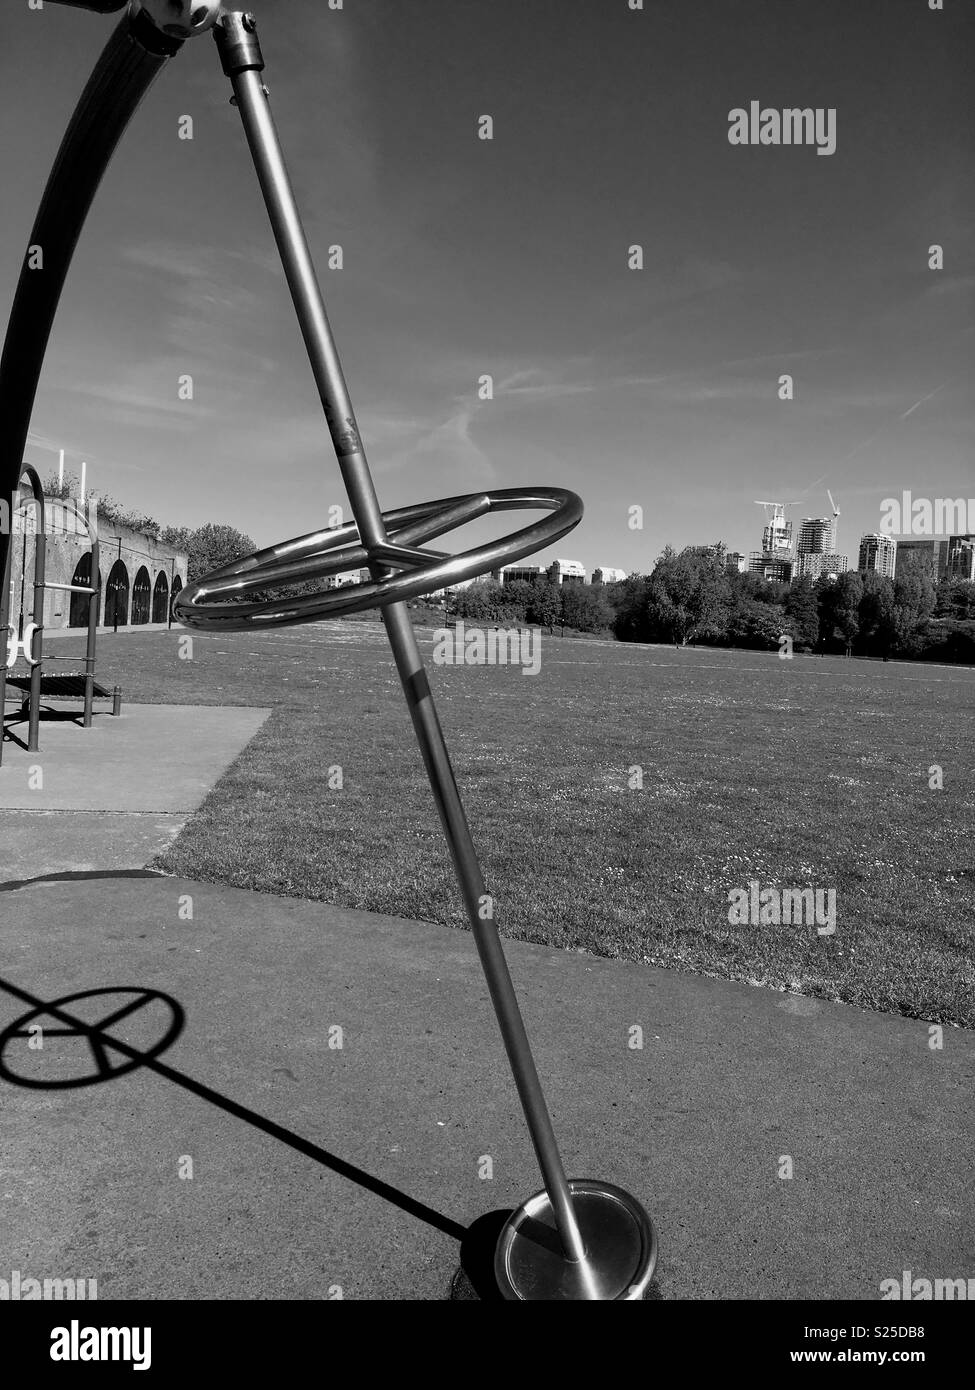 Metal Pole for Exercise in the Park - Stock Image